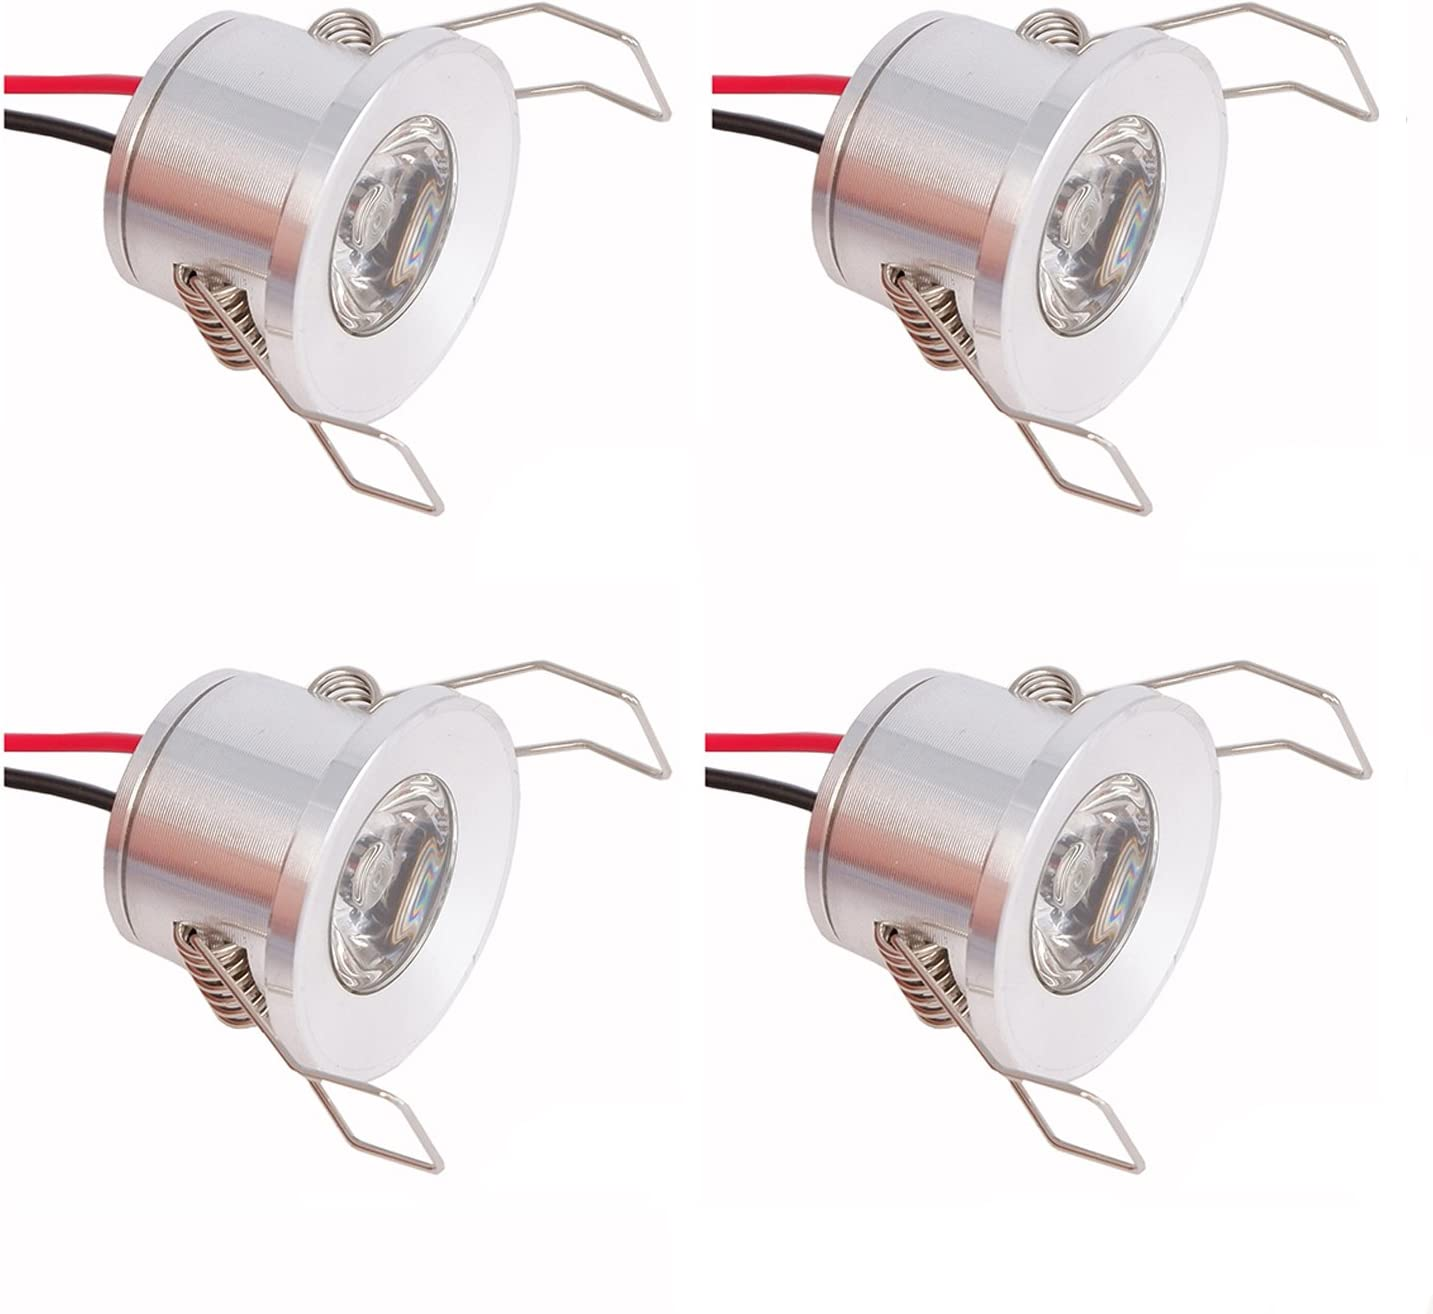 LED Ceiling Recessed Downlight Spotlight for Cabinet 1.5W 4000K Natural White Non-dimmable Mini Spot Lamp